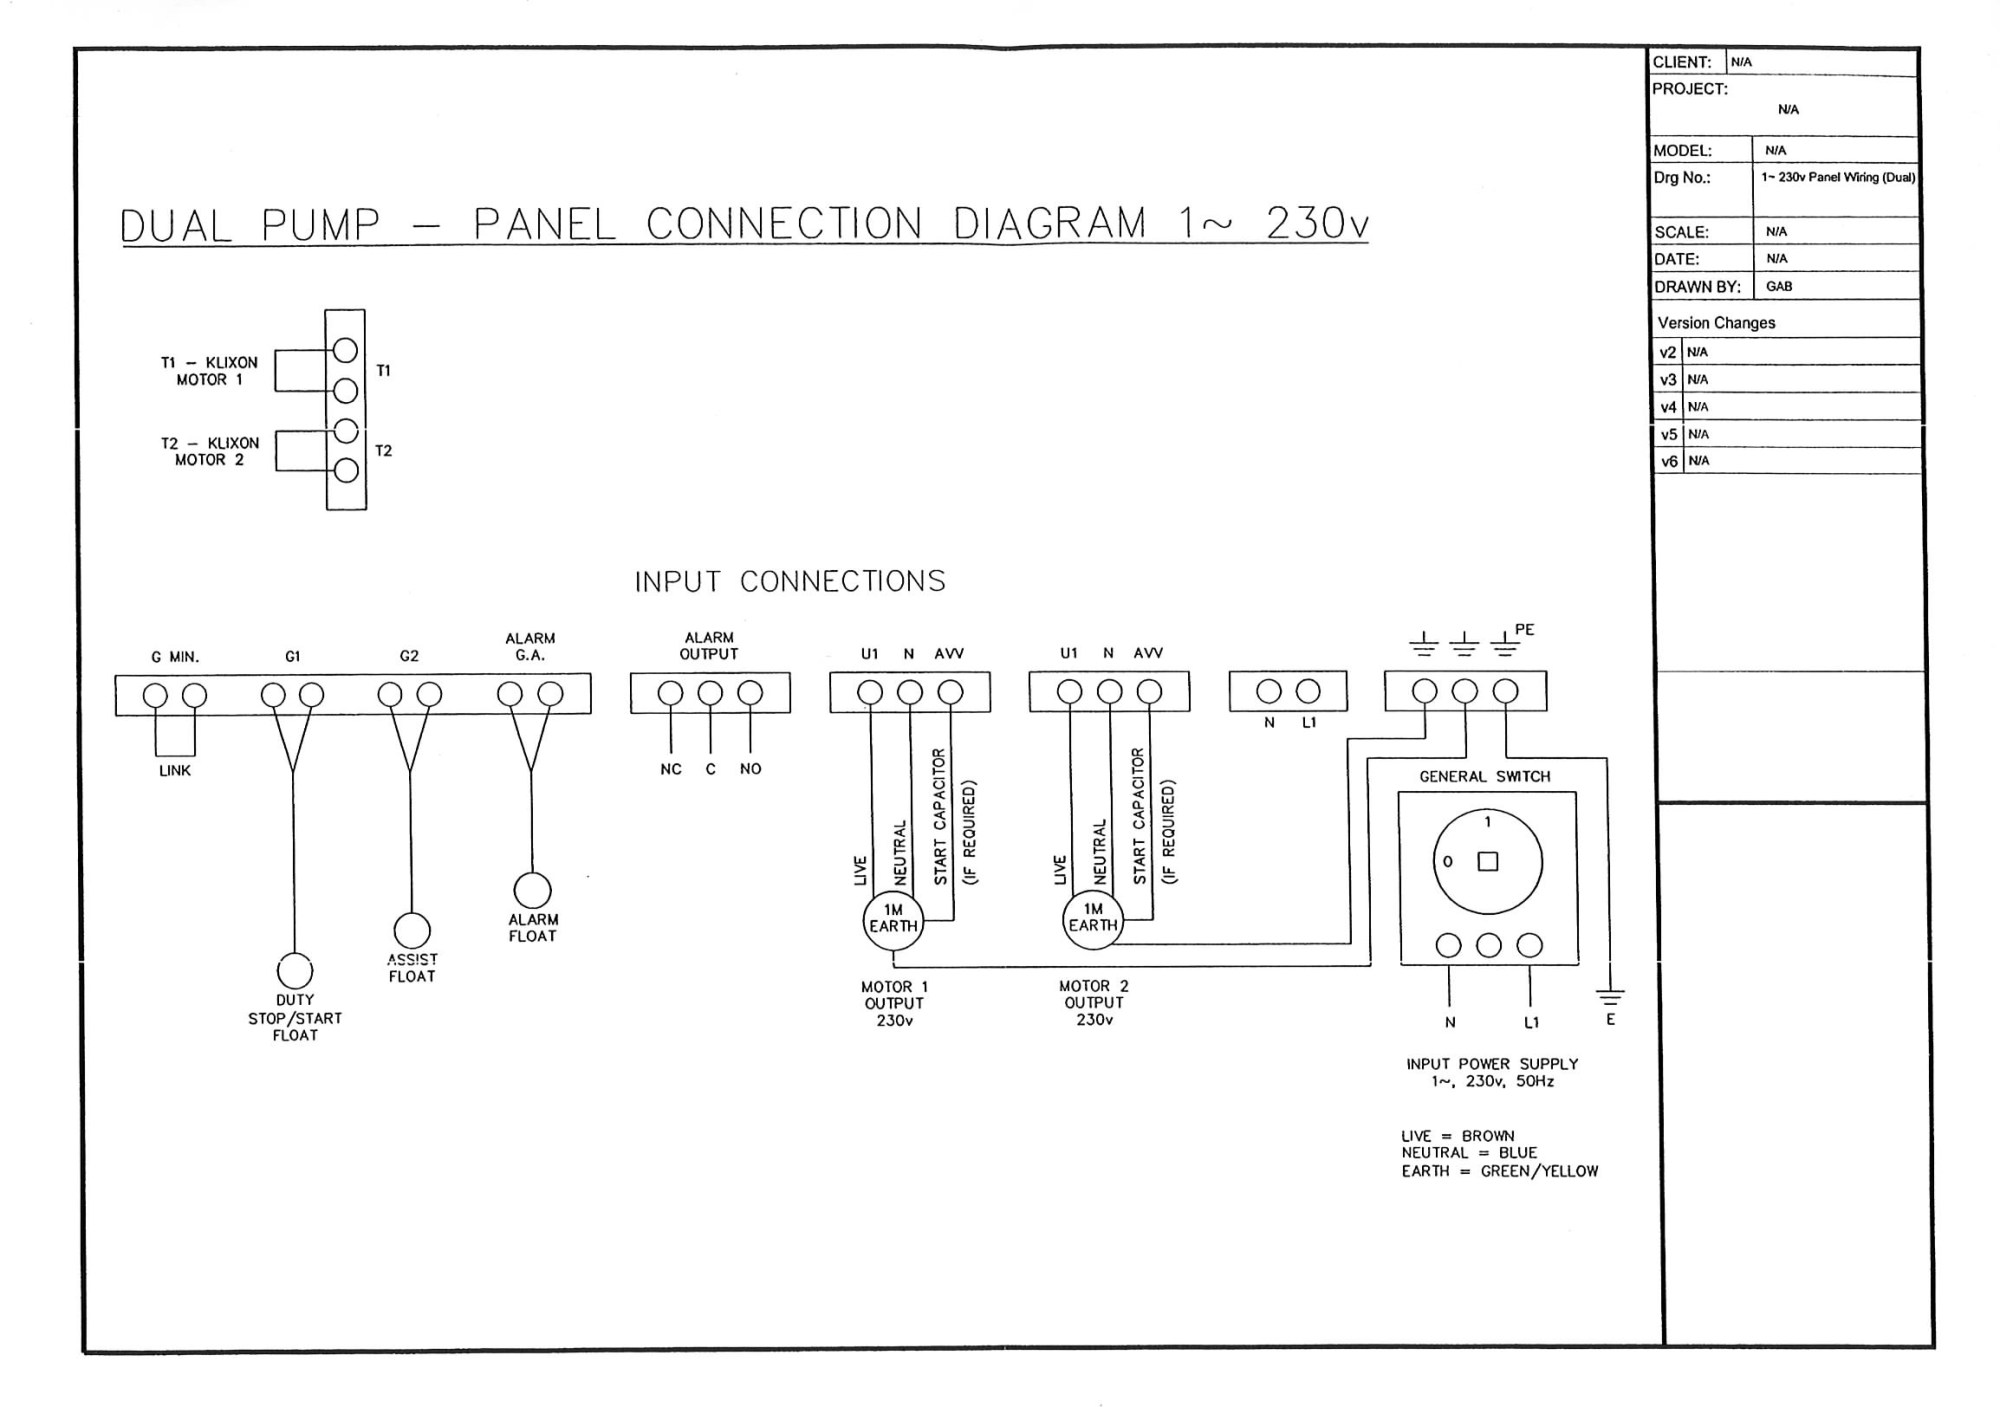 hight resolution of pump control panel wiring diagram wiring diagrams the single phase water pump control panel wiring diagram